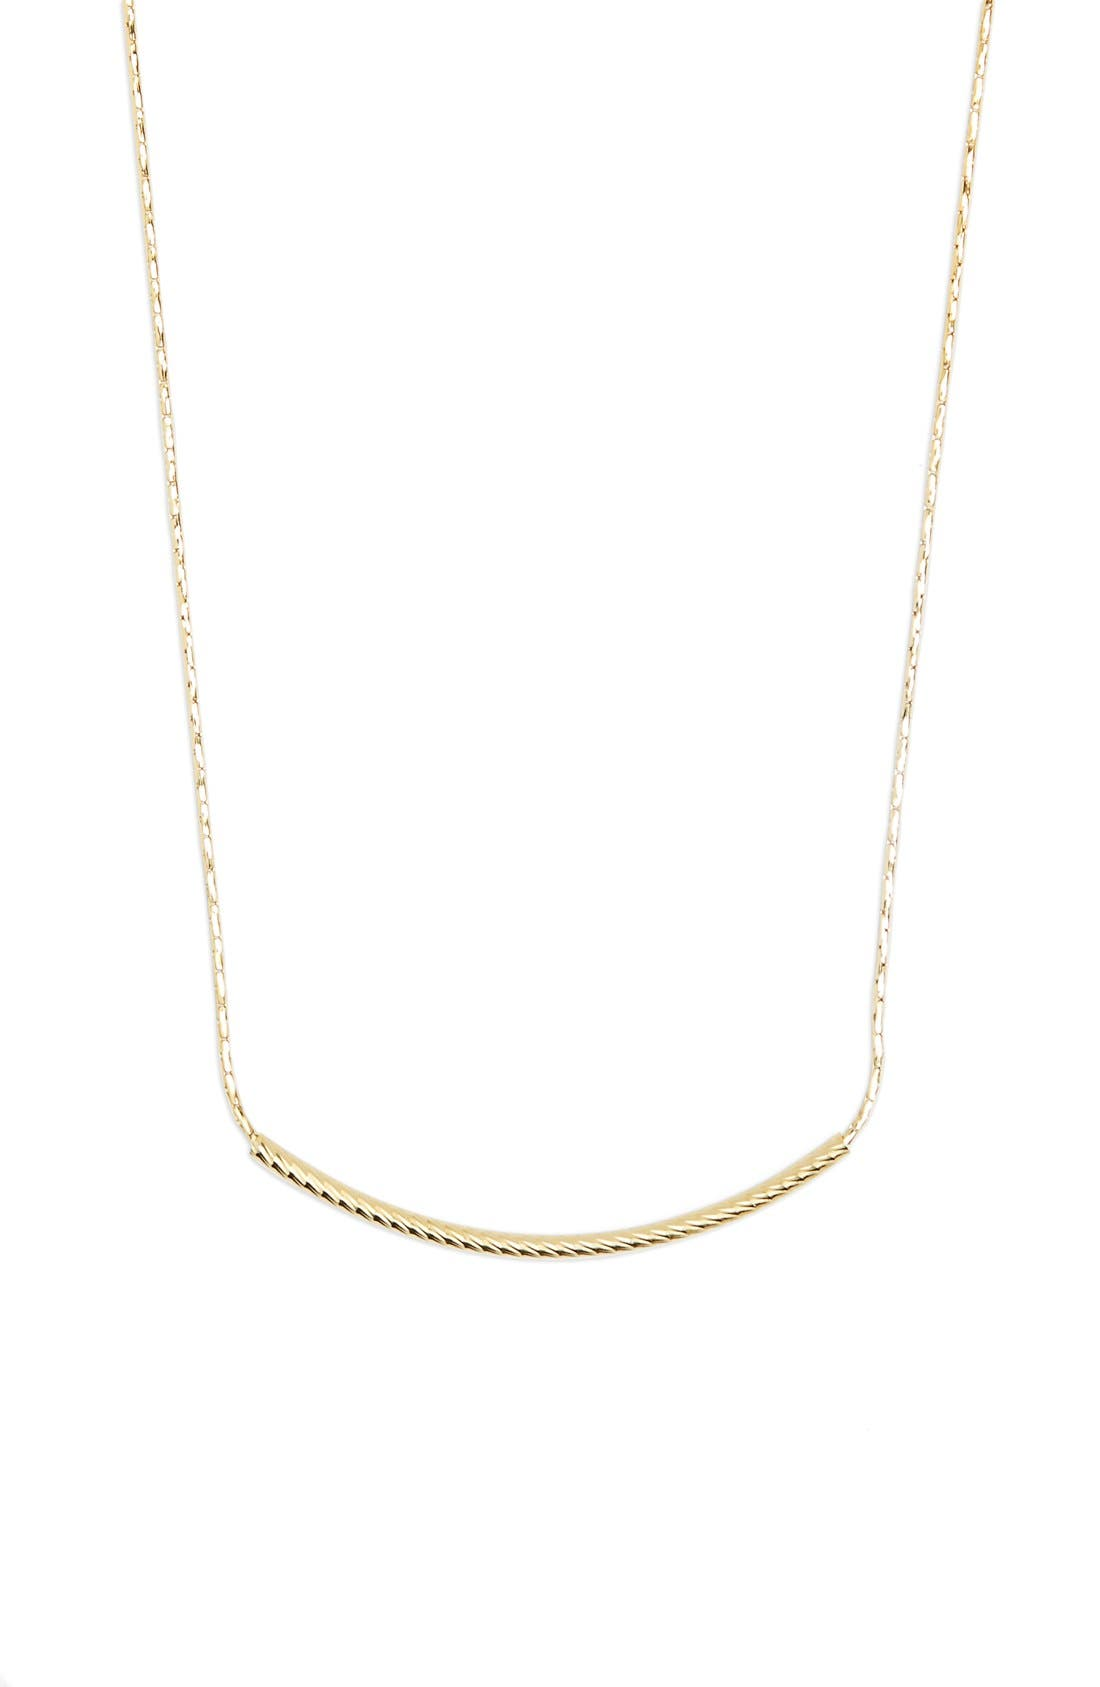 BONY LEVY 14k Gold Curved Bar Necklace